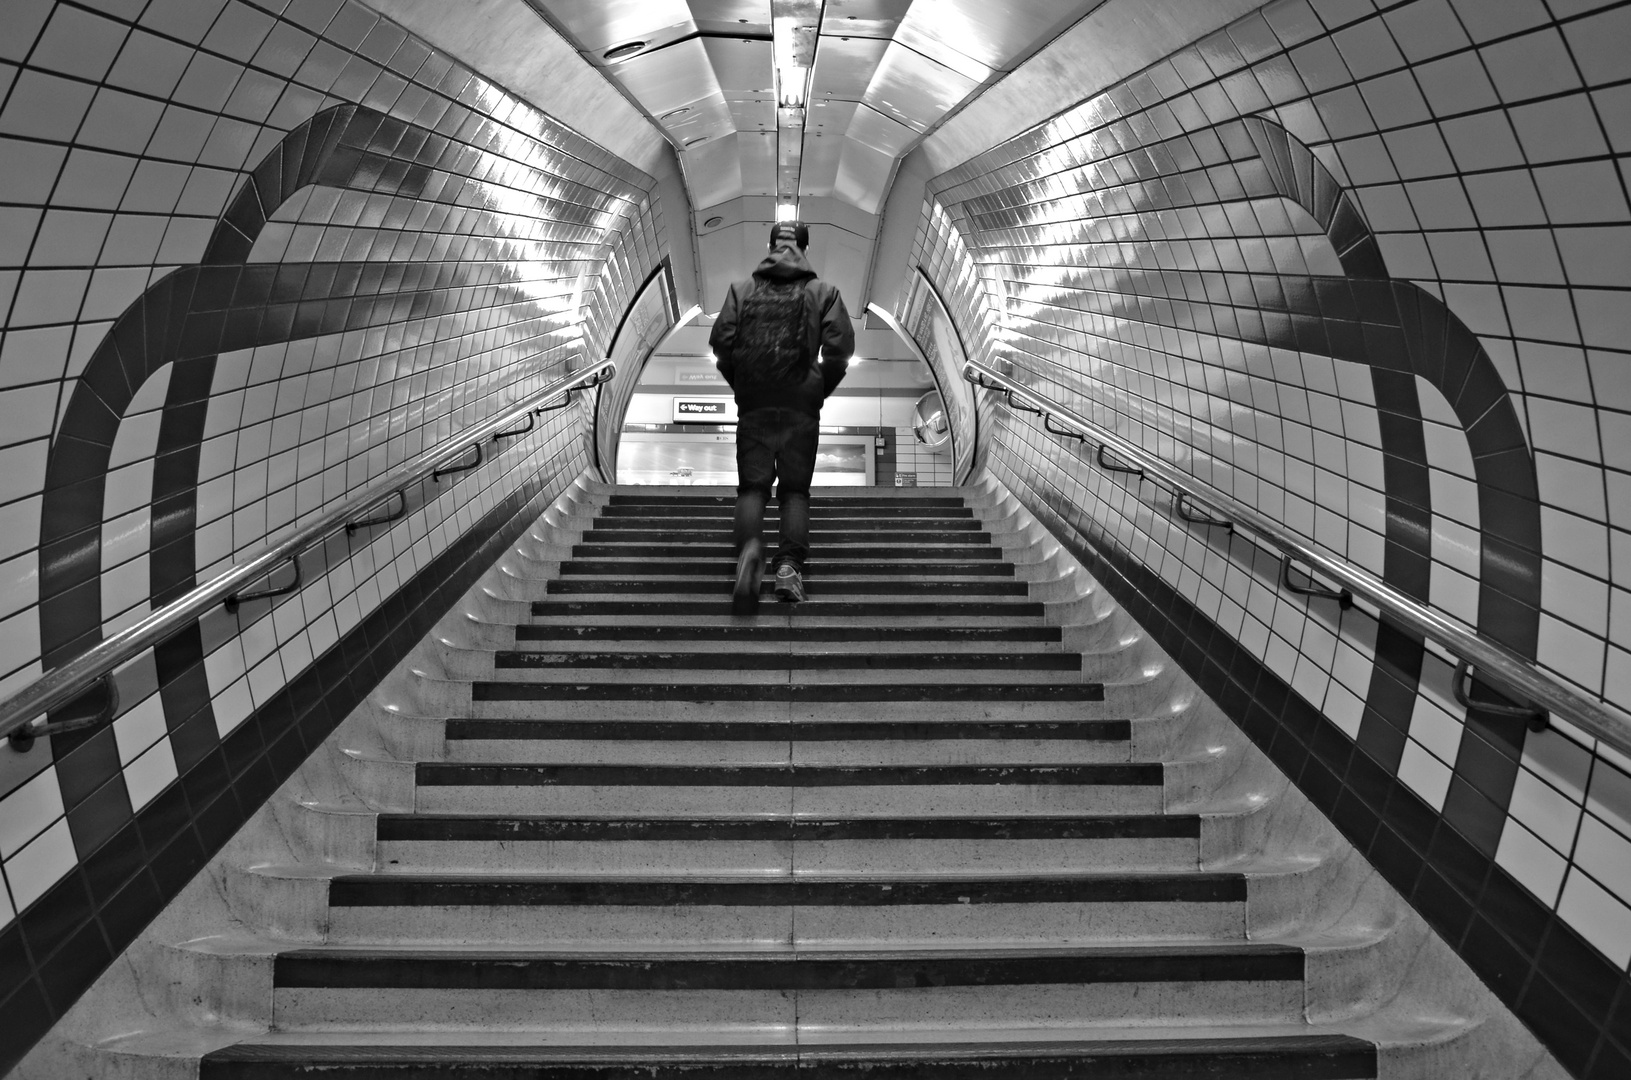 Stairs in the Tube